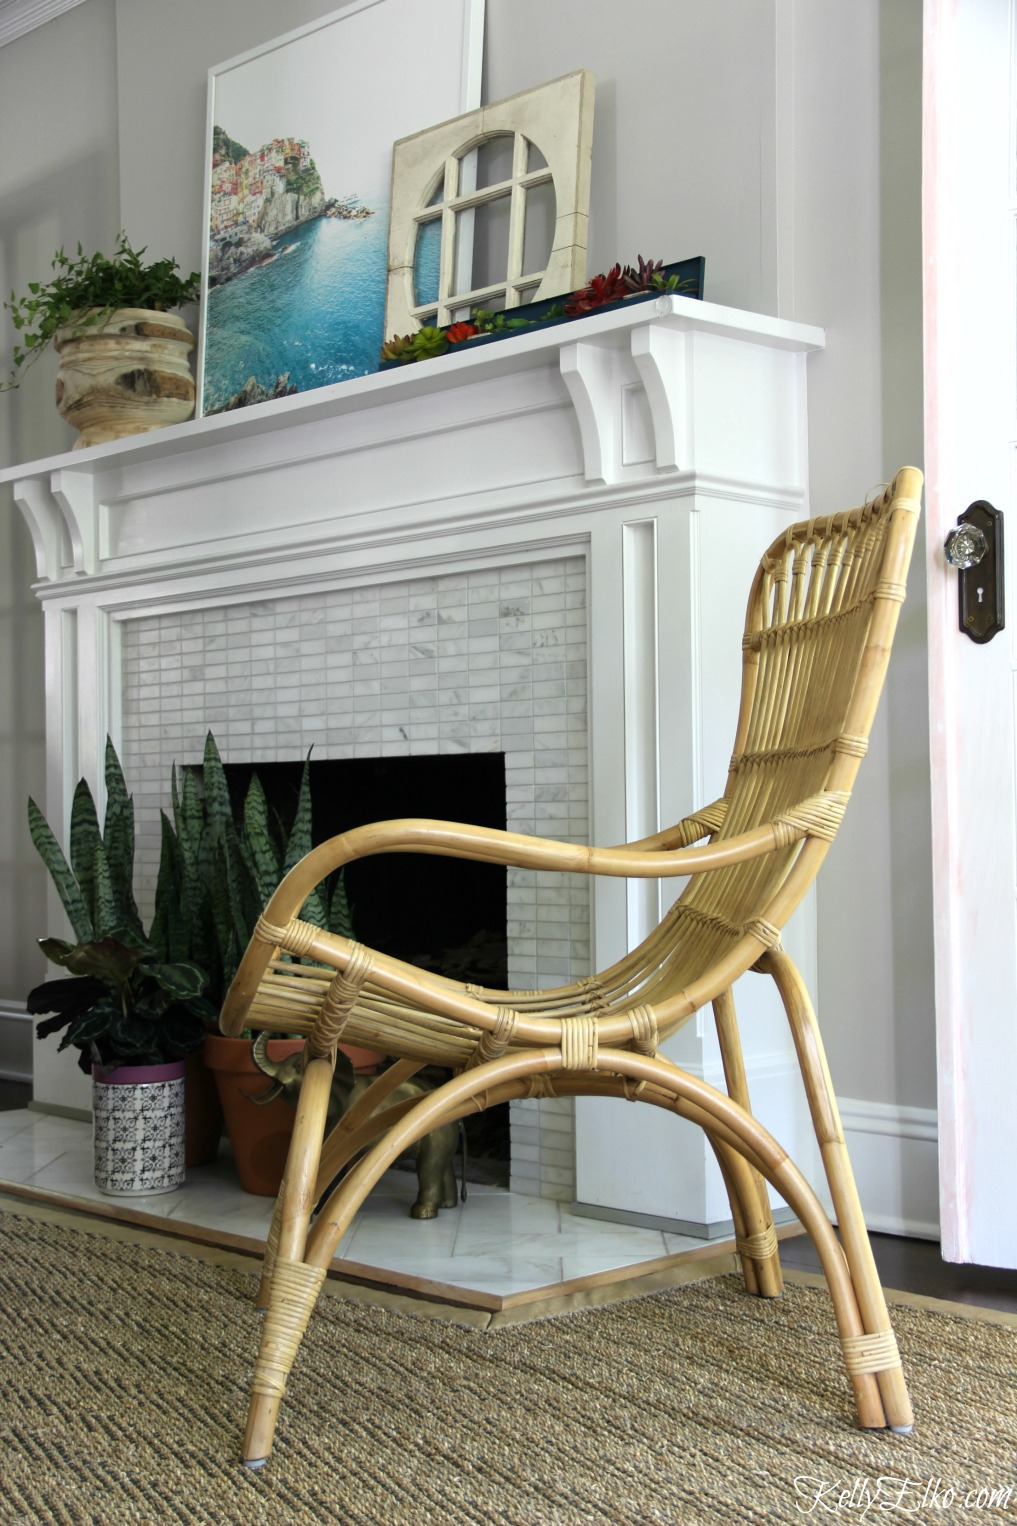 Love this outdoor rattan chair indoors - adds so much texture and a casual feel to the room kellyelko.com